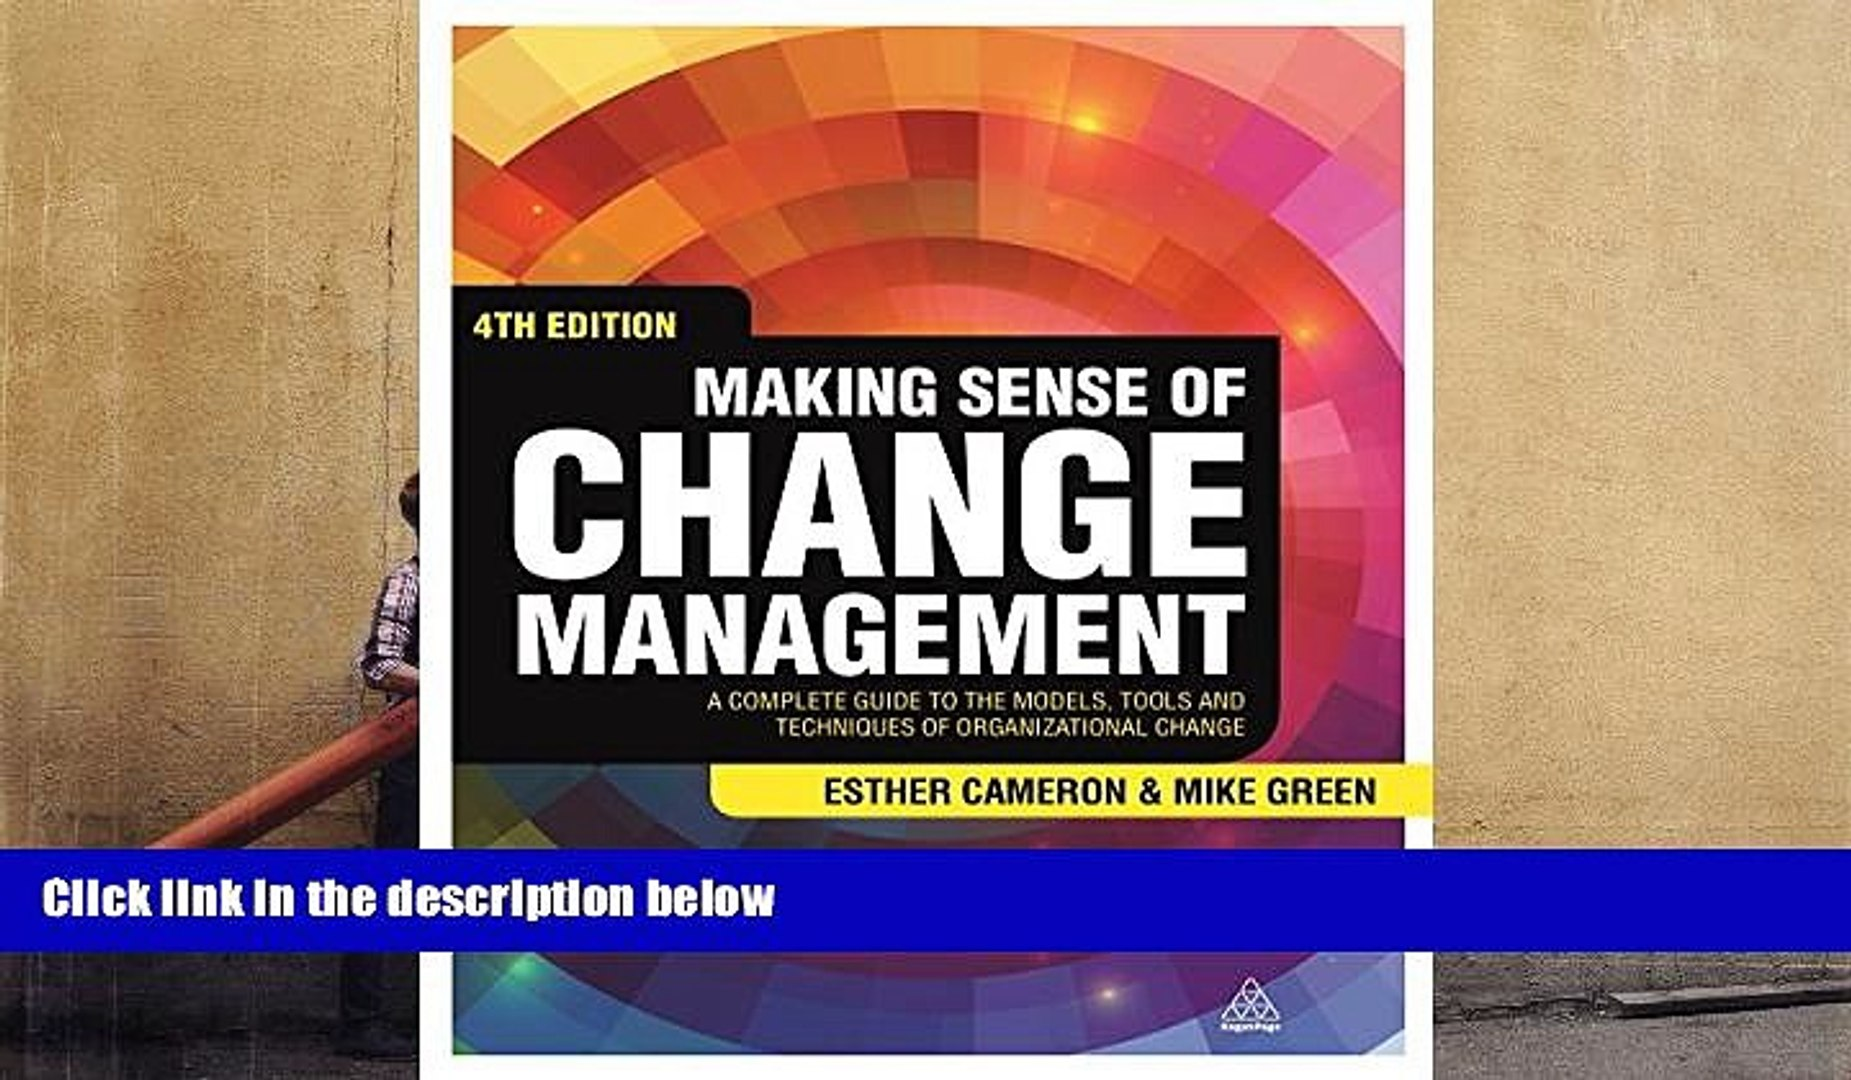 Download  Making Sense of Change Management: A Complete Guide to the Models, Tools and Techniques